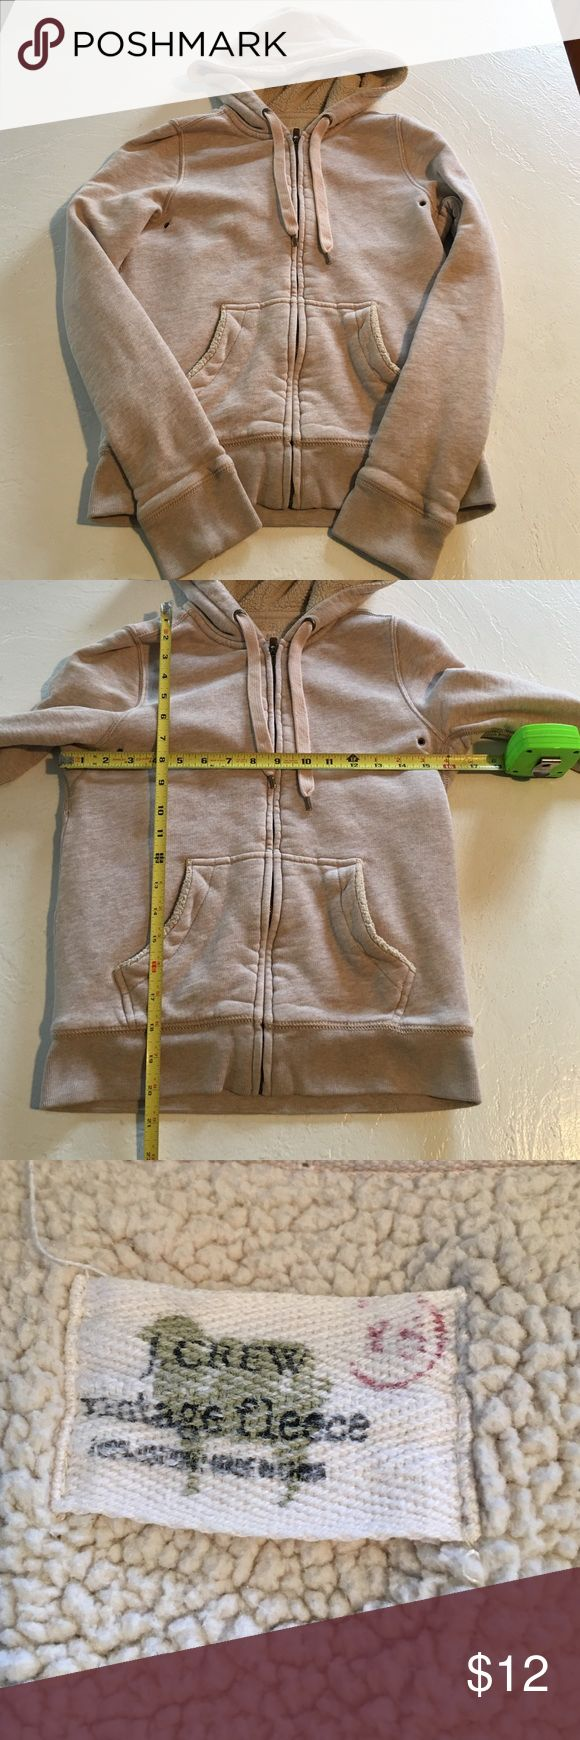 Women's J. Crew Hoodie Sweatshirt, XS You will be purchasing a Women's J. Crew Beige with pink and gray undertones Hoodie Sweatshirt, size XS. Please see photos for measurements. It is used. If you have any further questions, please do not hesitate to ask. Thanks for Looking! J. Crew Other